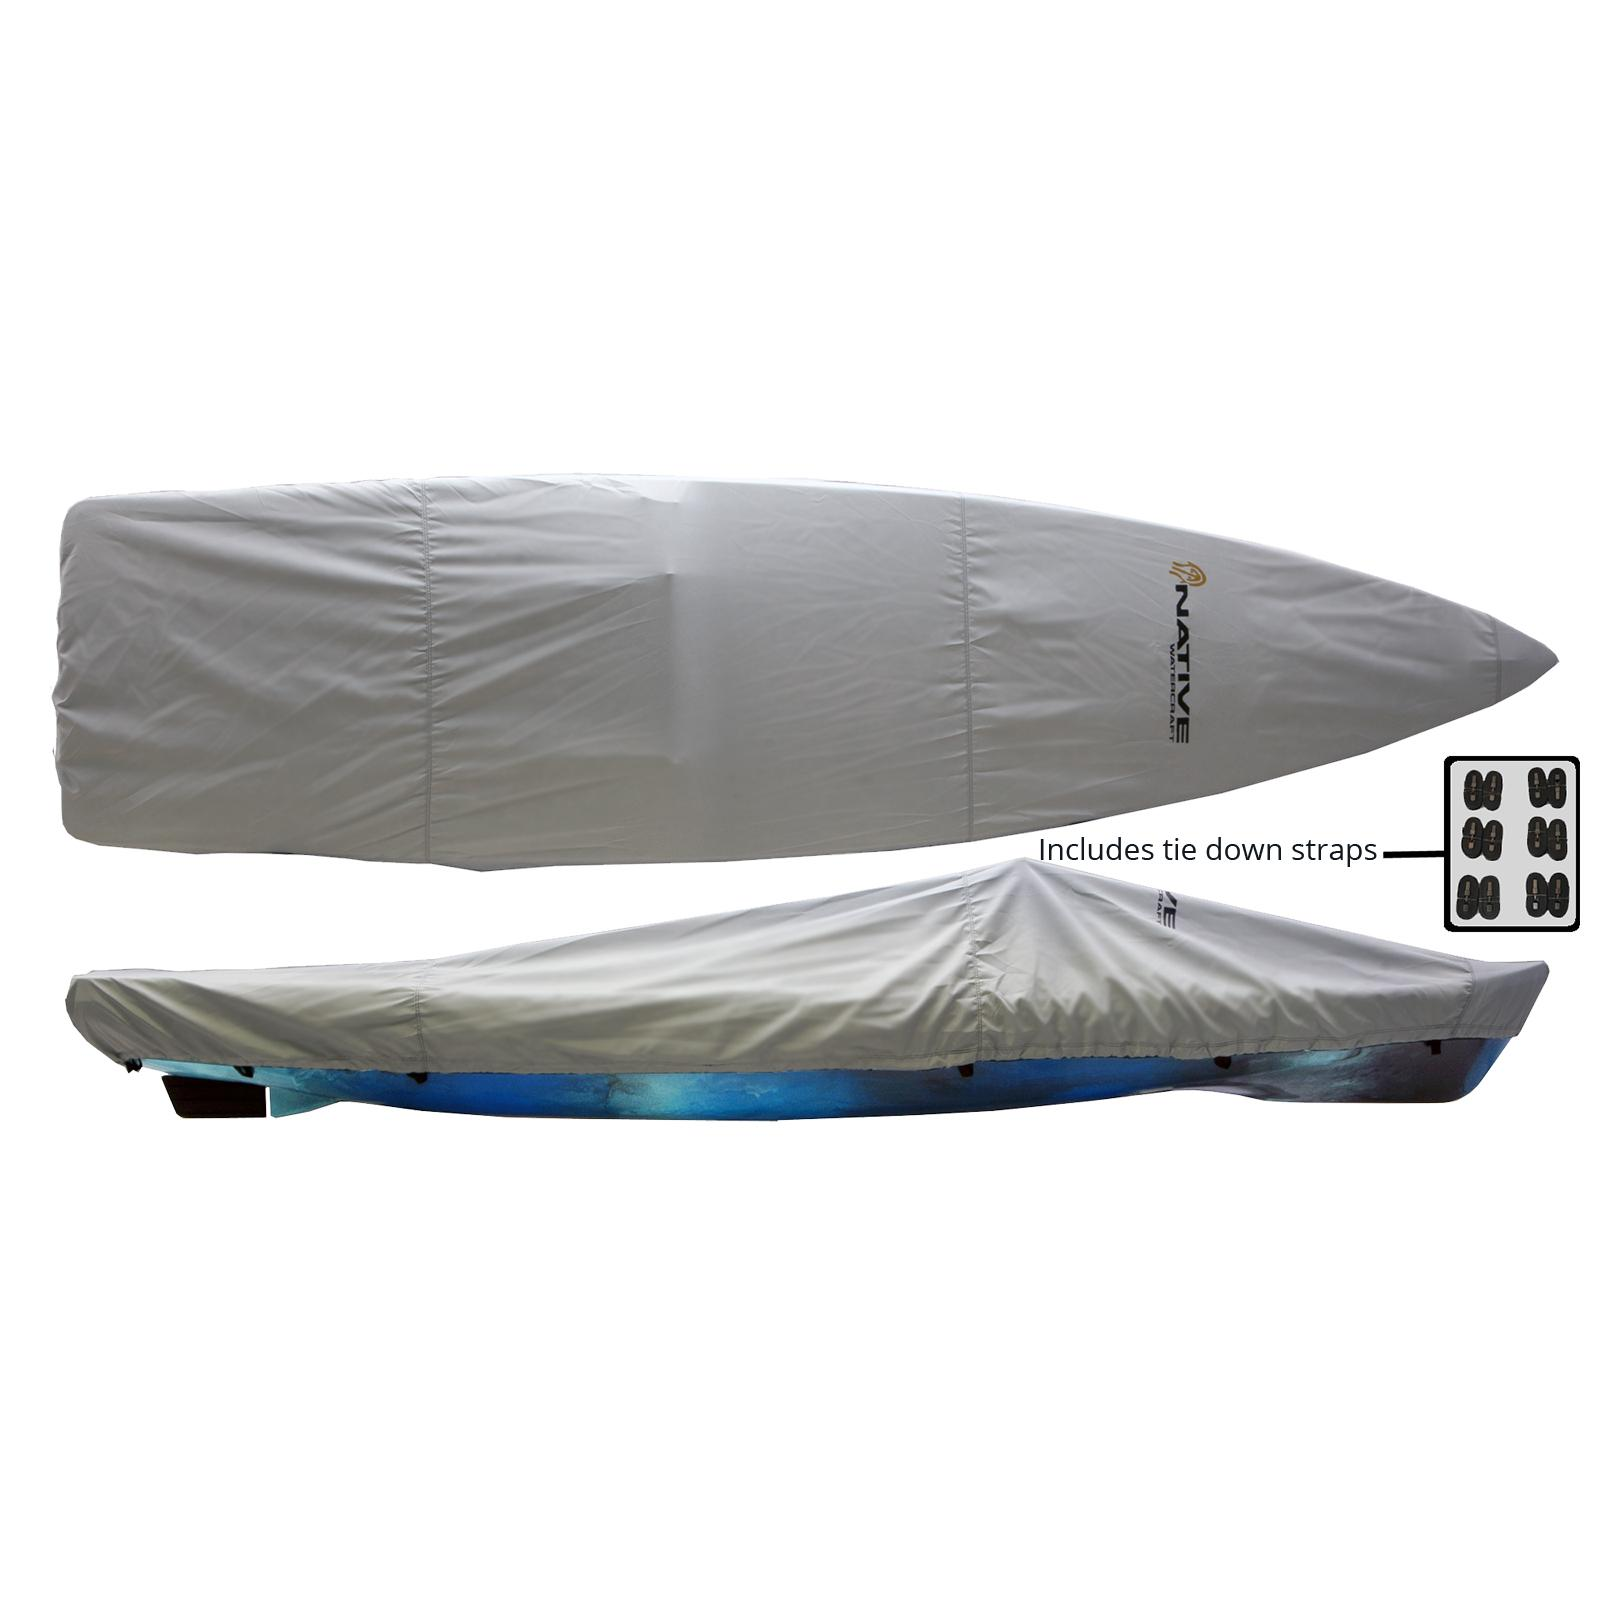 Native Watercraft Kayak Cover